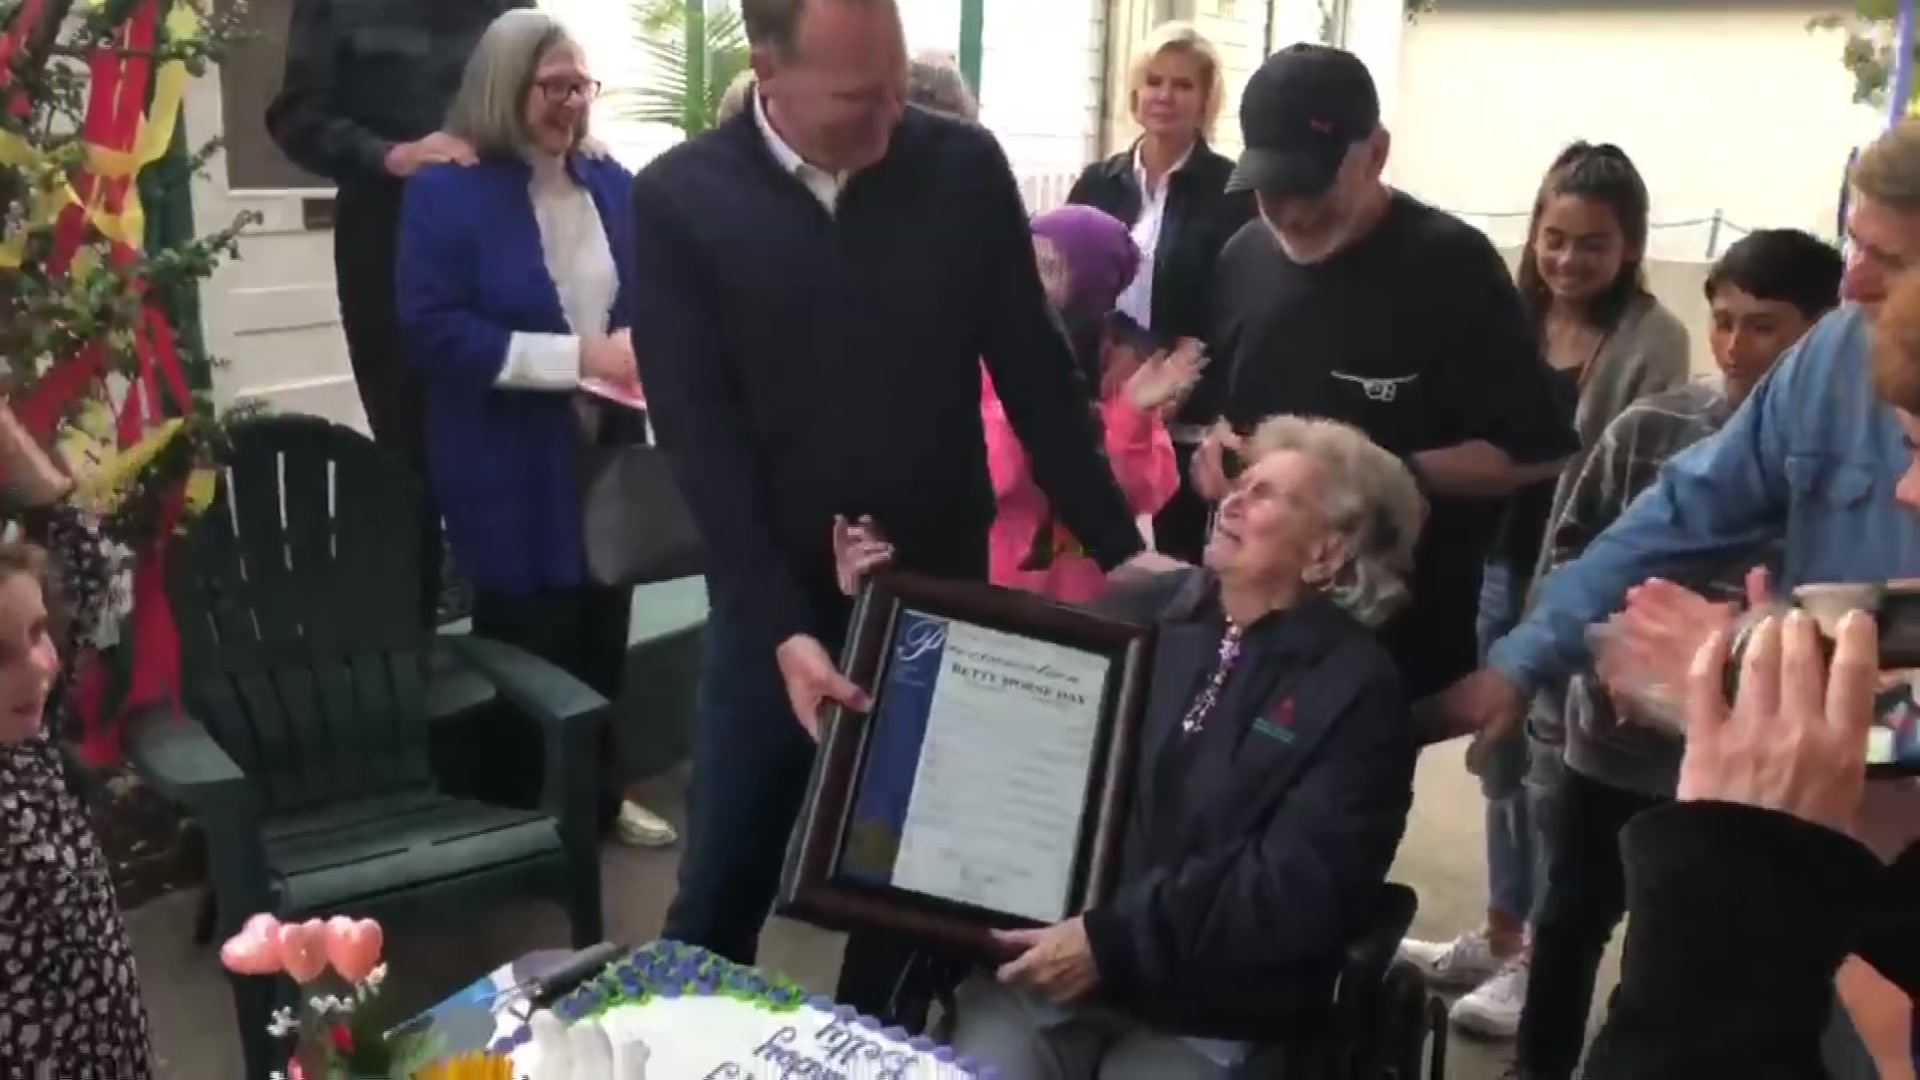 Mayor Faulconer Helps Celebrate OB Woman's 100th Birthday With Special Gift